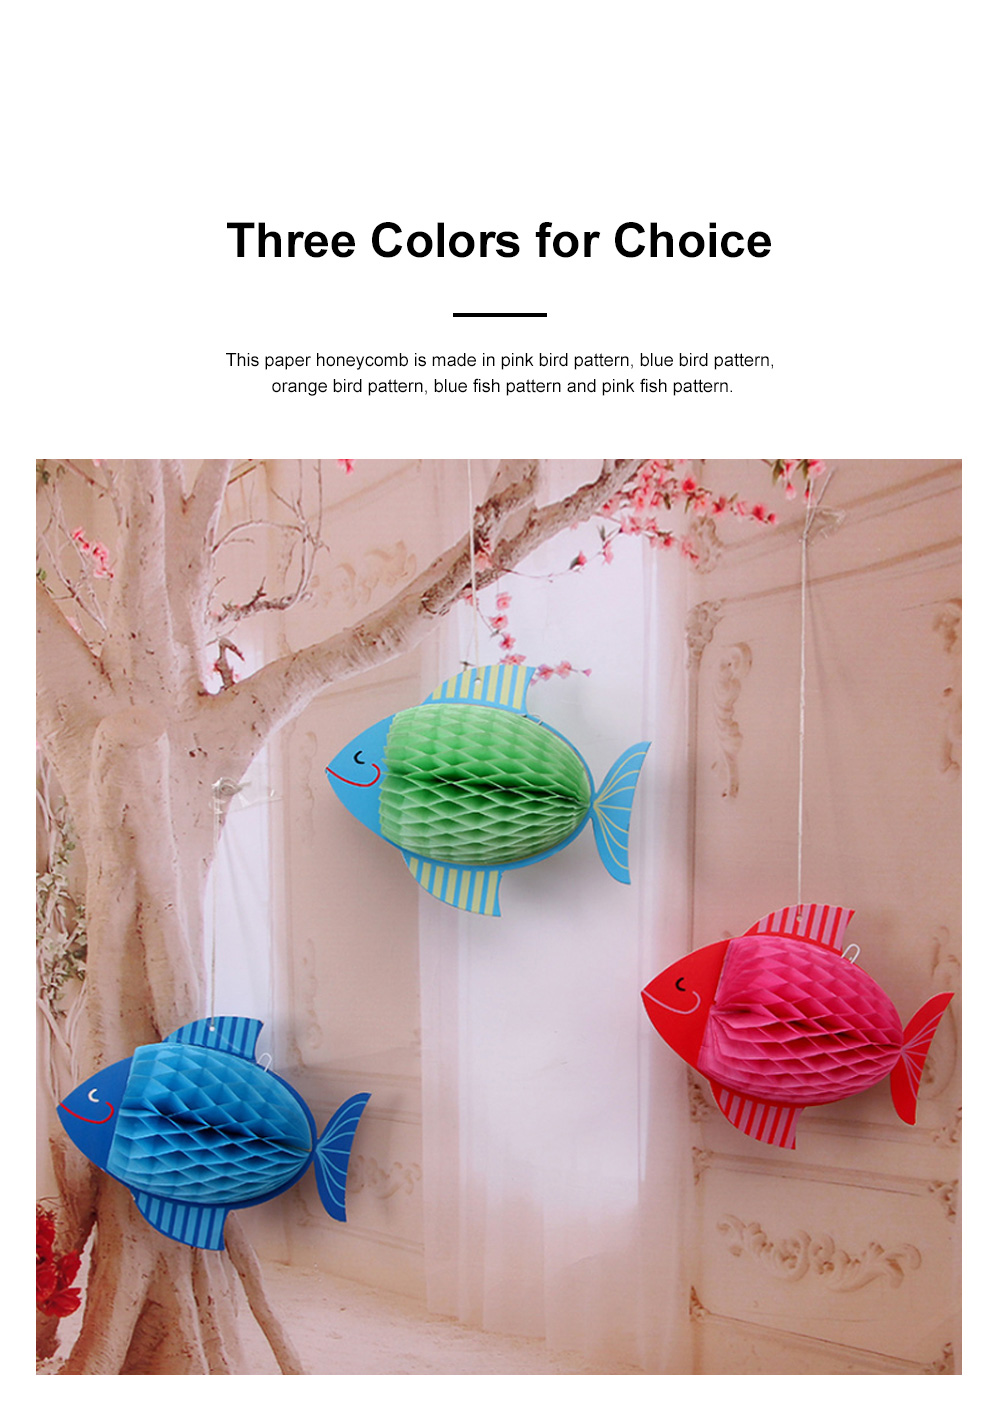 6pcs Festive Decoration Bird Fish Paper Honeycomb Party Use Three-dimensional Card Fish Paper Honeycomb Paper Flowers Ball 1